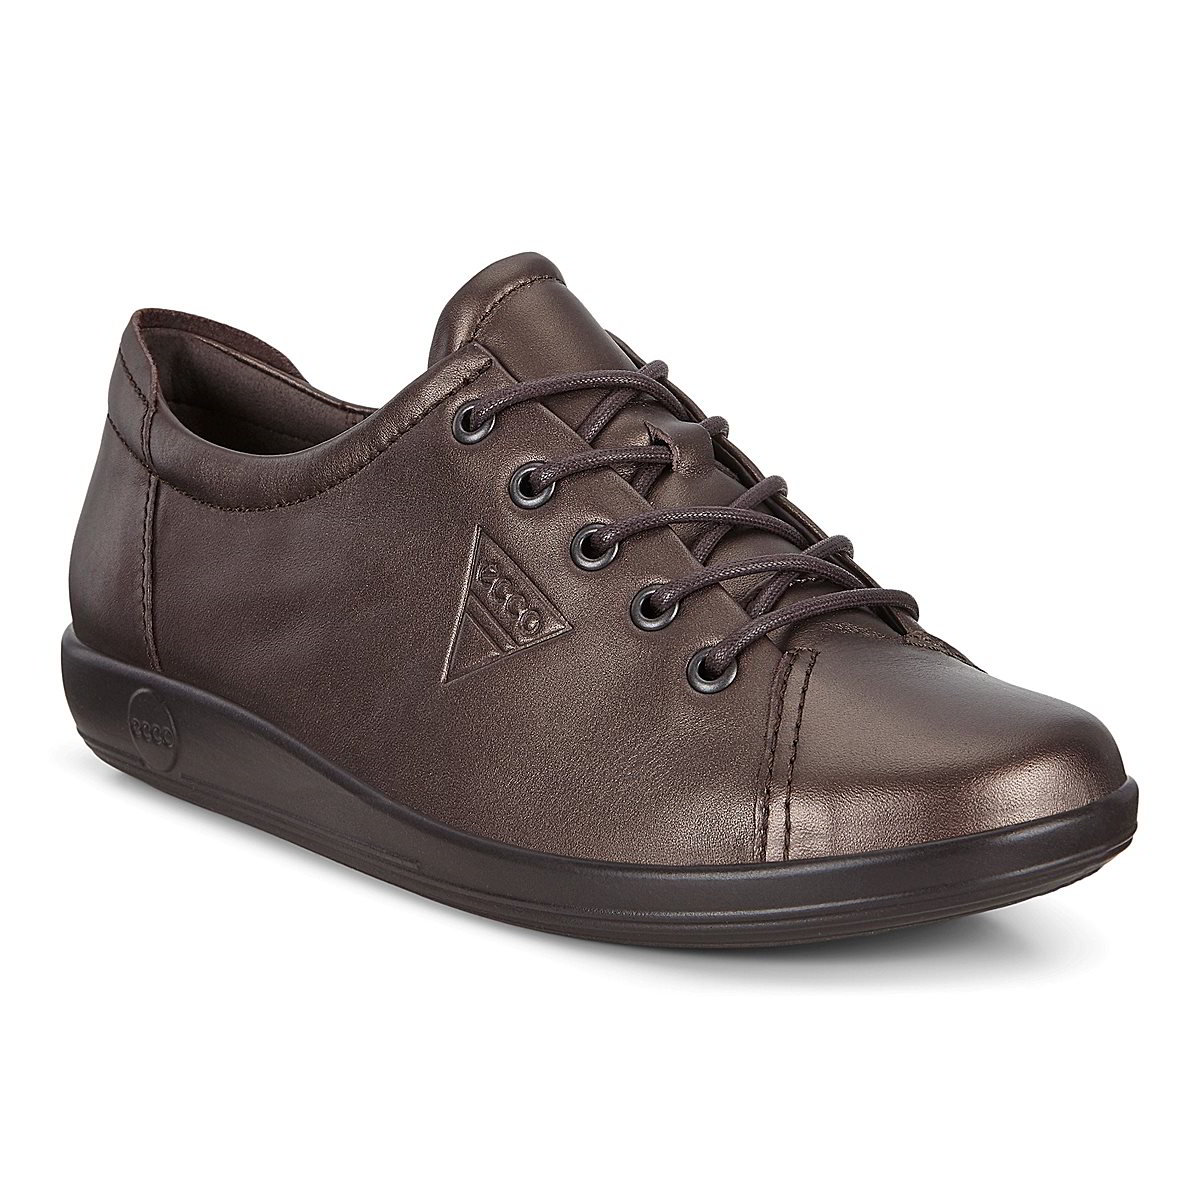 Ecco Shoes Womens Soft 2.0 Leather Shoes - Shale Metallic